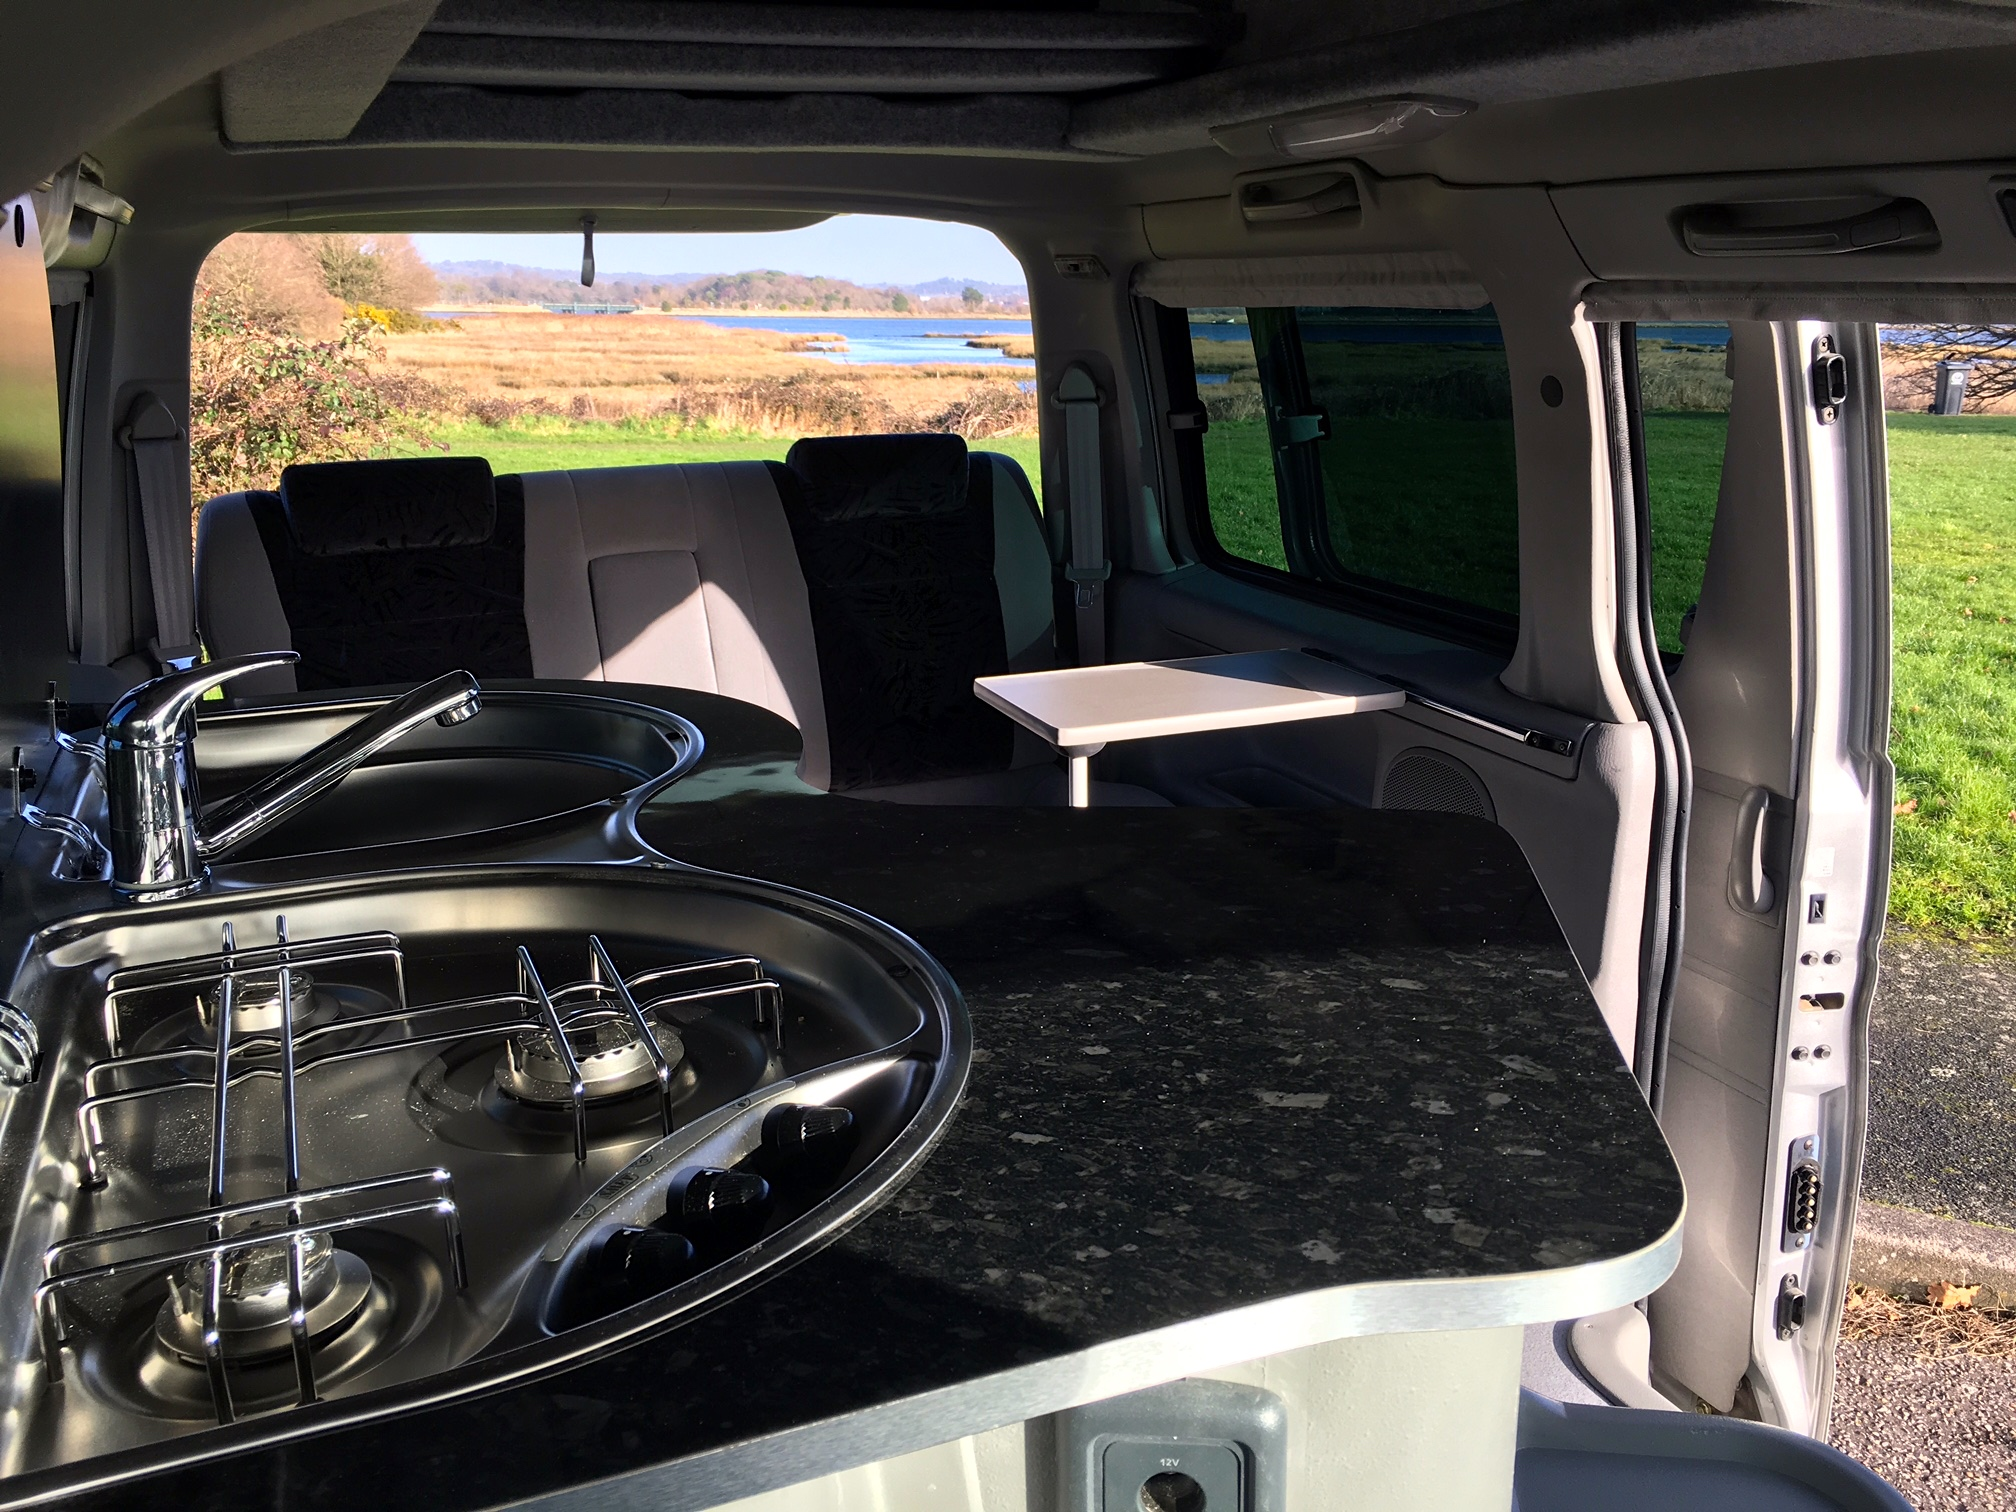 Nissan Serena Camper Conversion >> Imperial Leisure Vehicles - In Stock -2002 Mazda Bongo 2.0 Aero Manual Roof - Silver 18 - ON ...